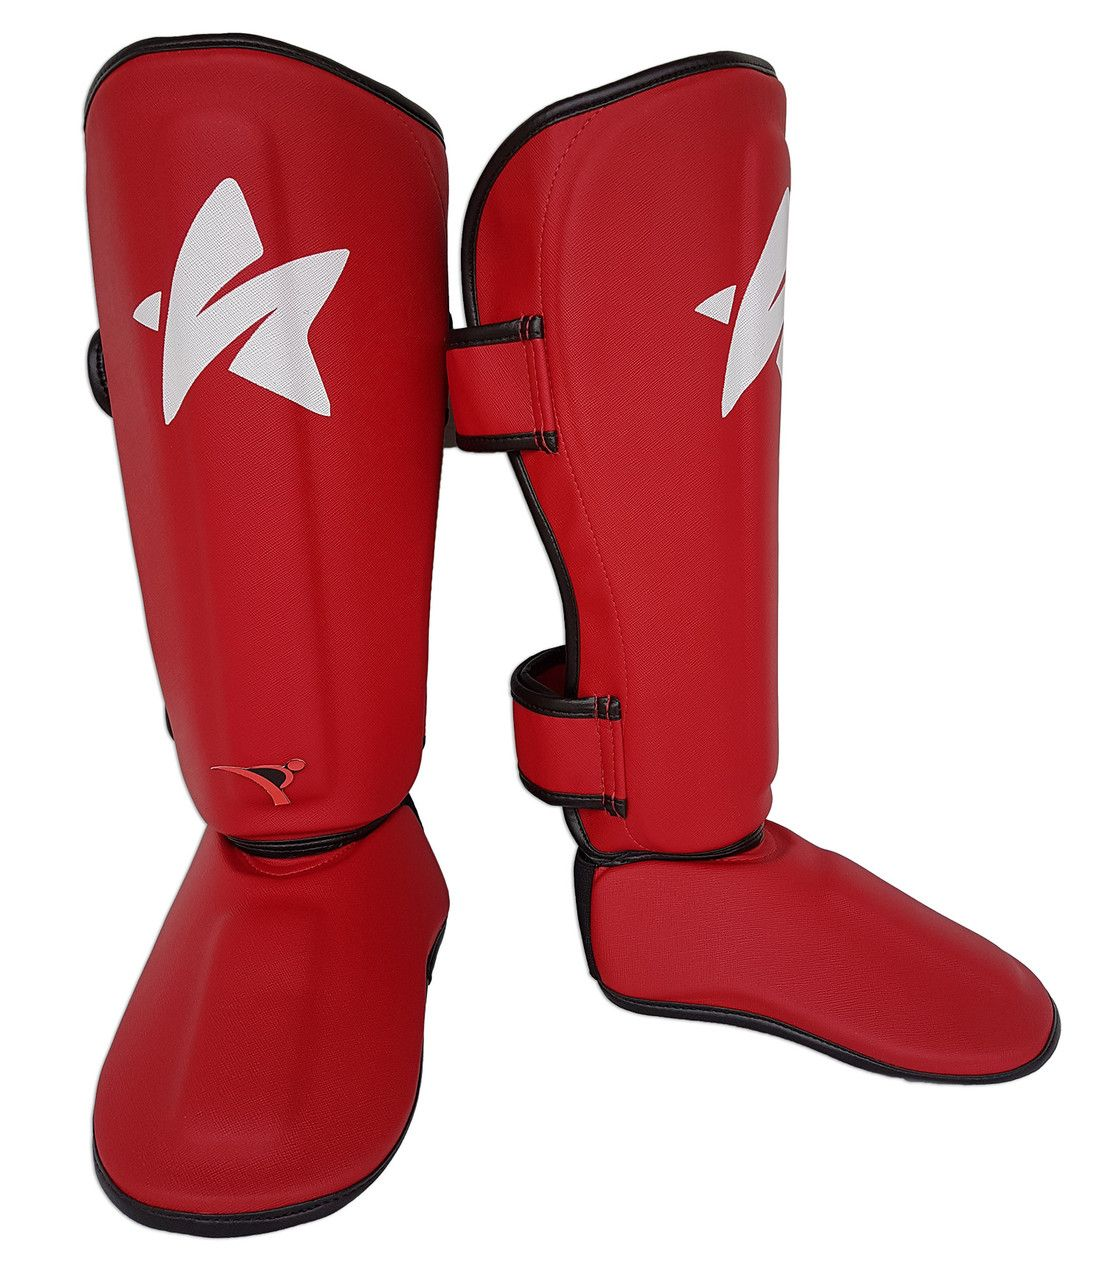 Caneleira Tradicional Muay Thai MMA Vermelha Ultra Light - SulSport  - PRALUTA SHOP